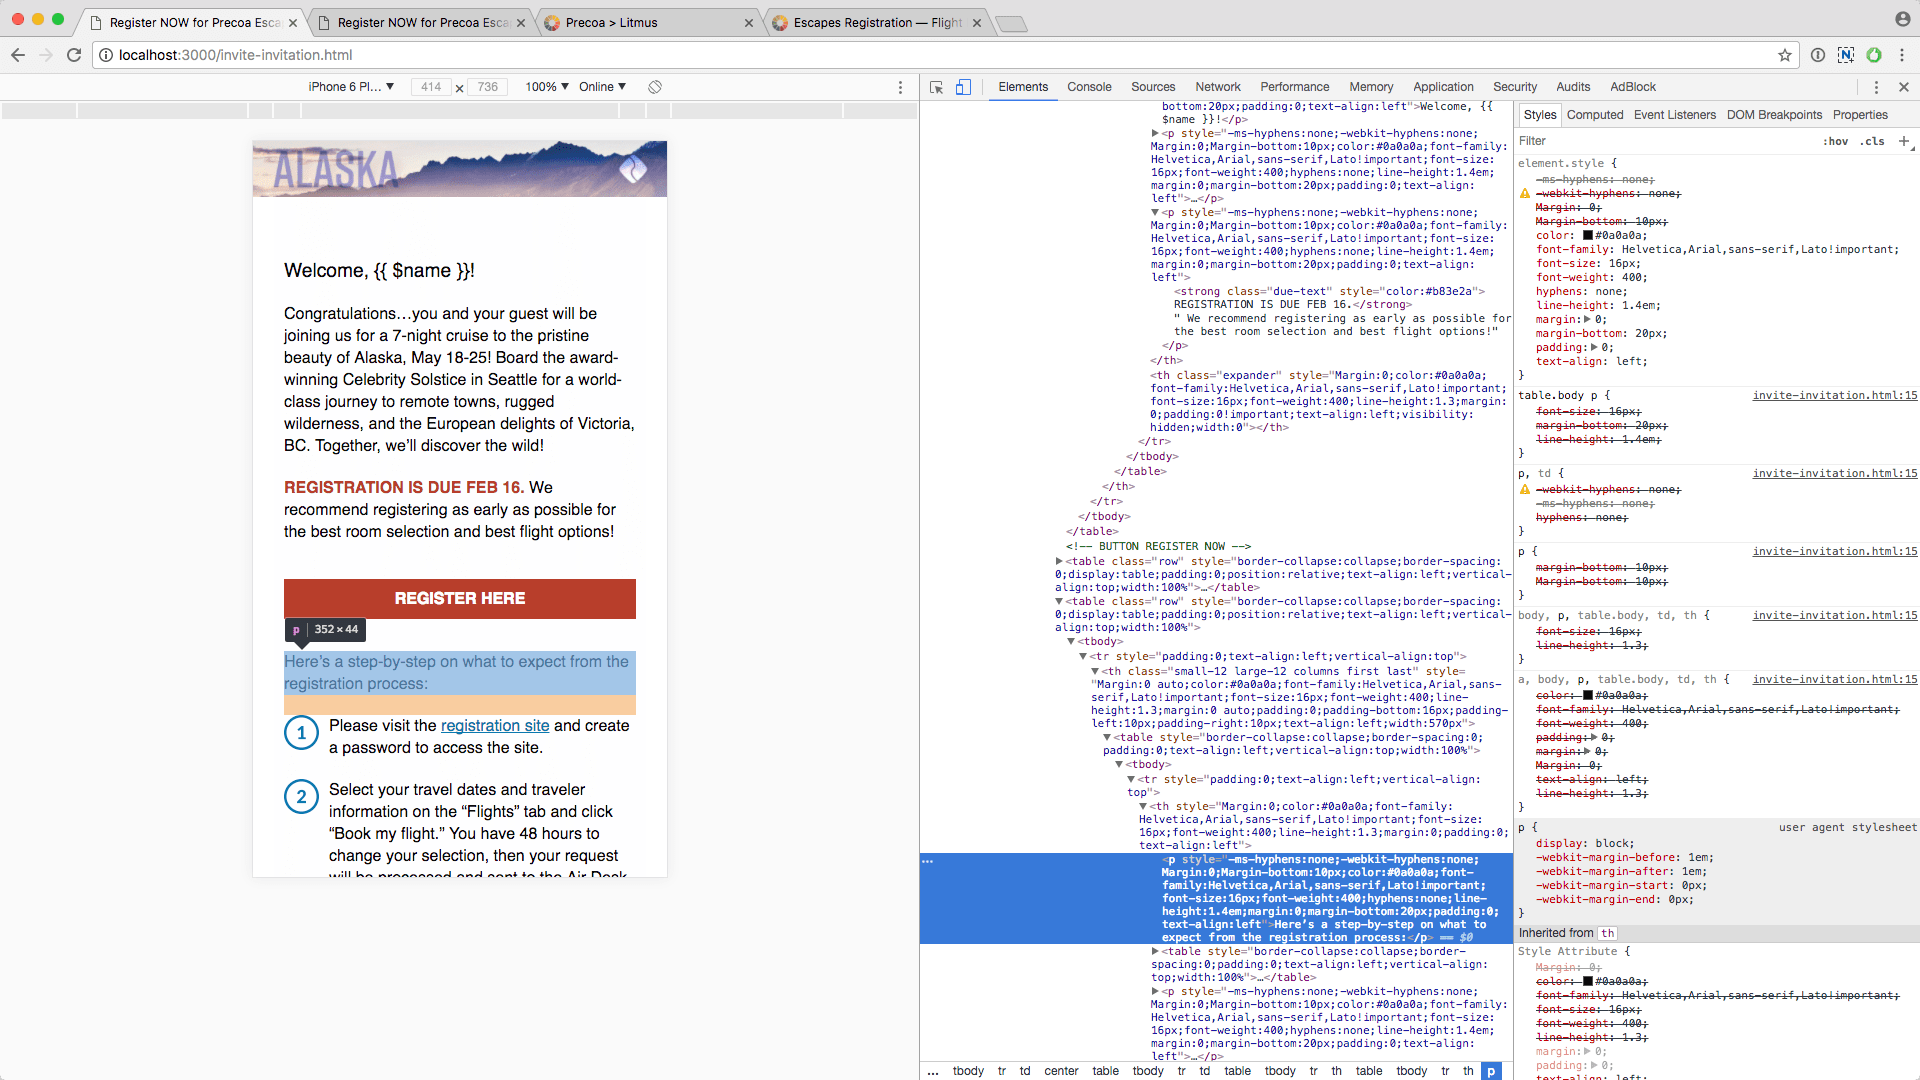 Chrome Inspector View